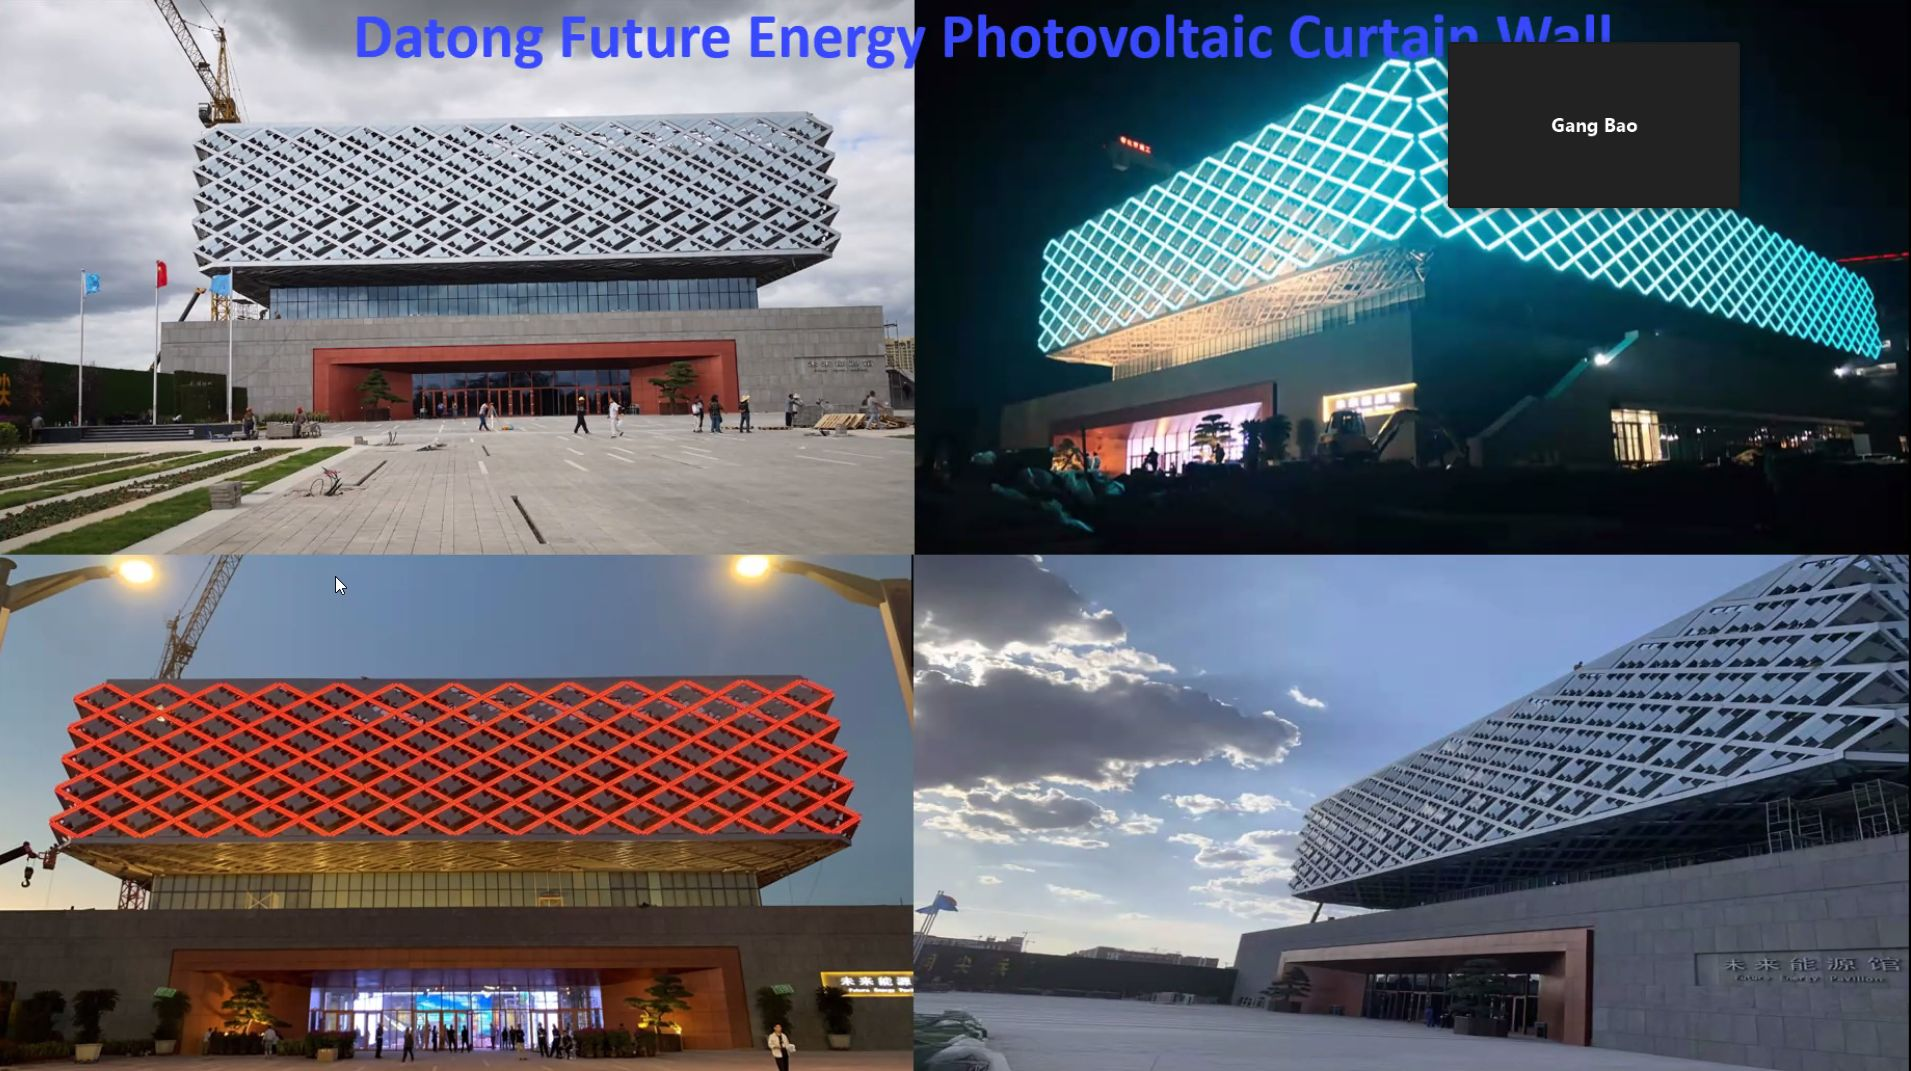 Example of Building Integration of CdTe by Advanced Solar Power